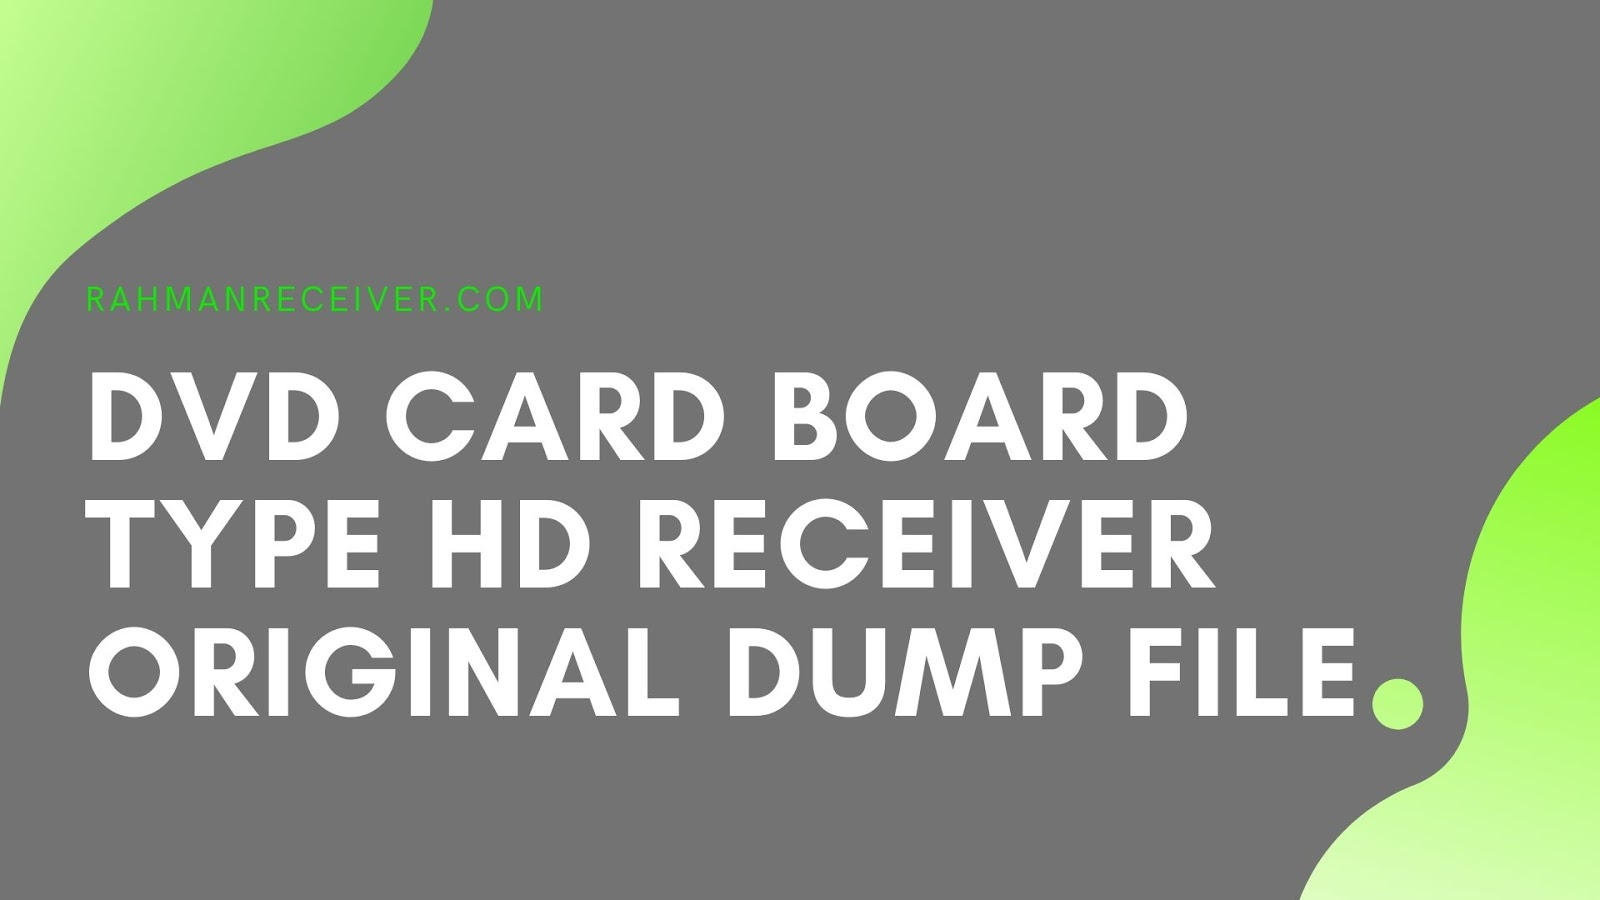 DVD CARD BOARD TYPE HD RECEIVER ORIGINAL DUMP FILE 24 MAY 2019